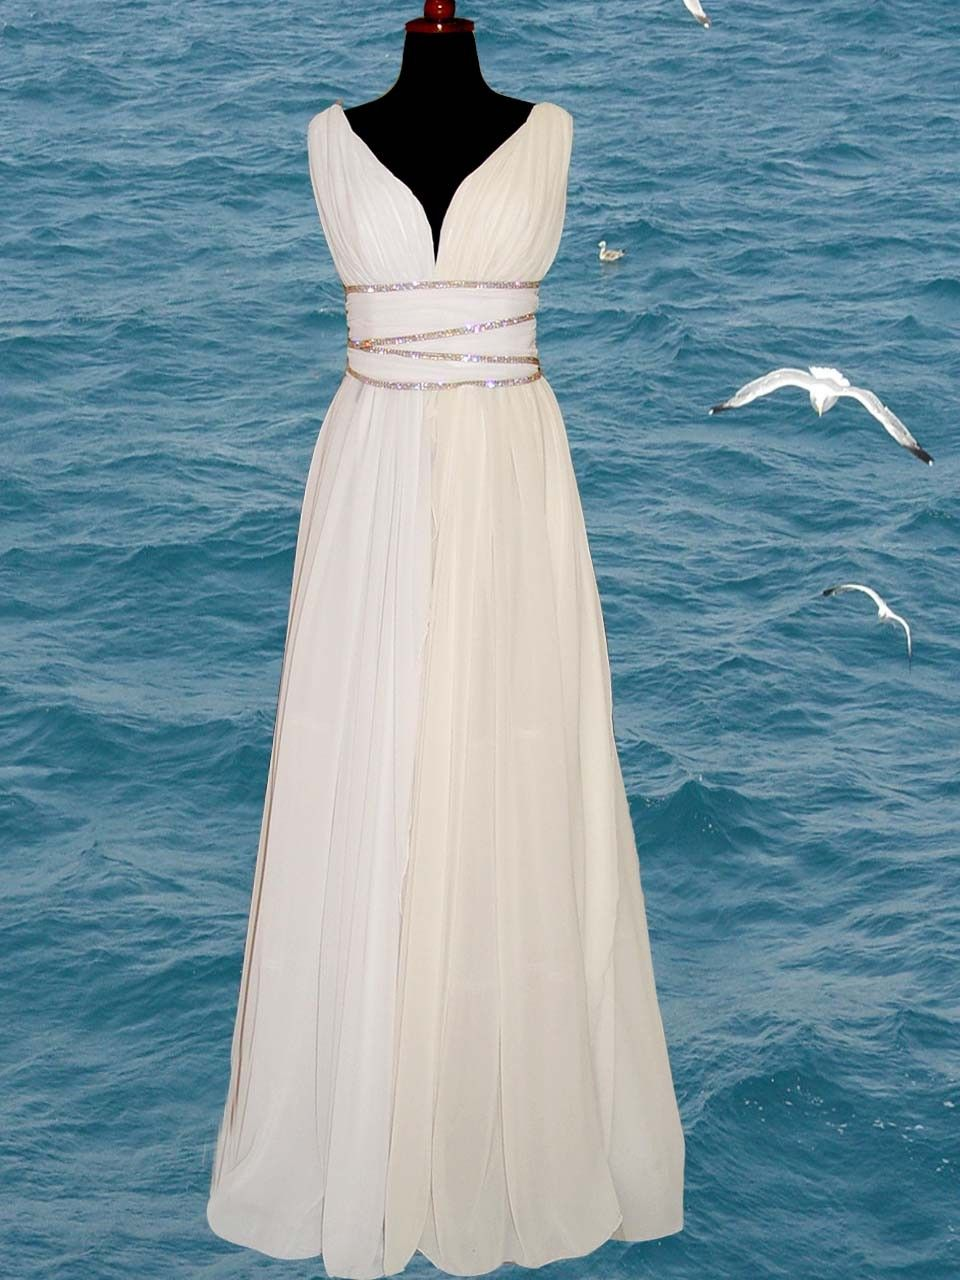 Greek Goddess Style Wedding Gowns | greek wedding dress | clothes ...